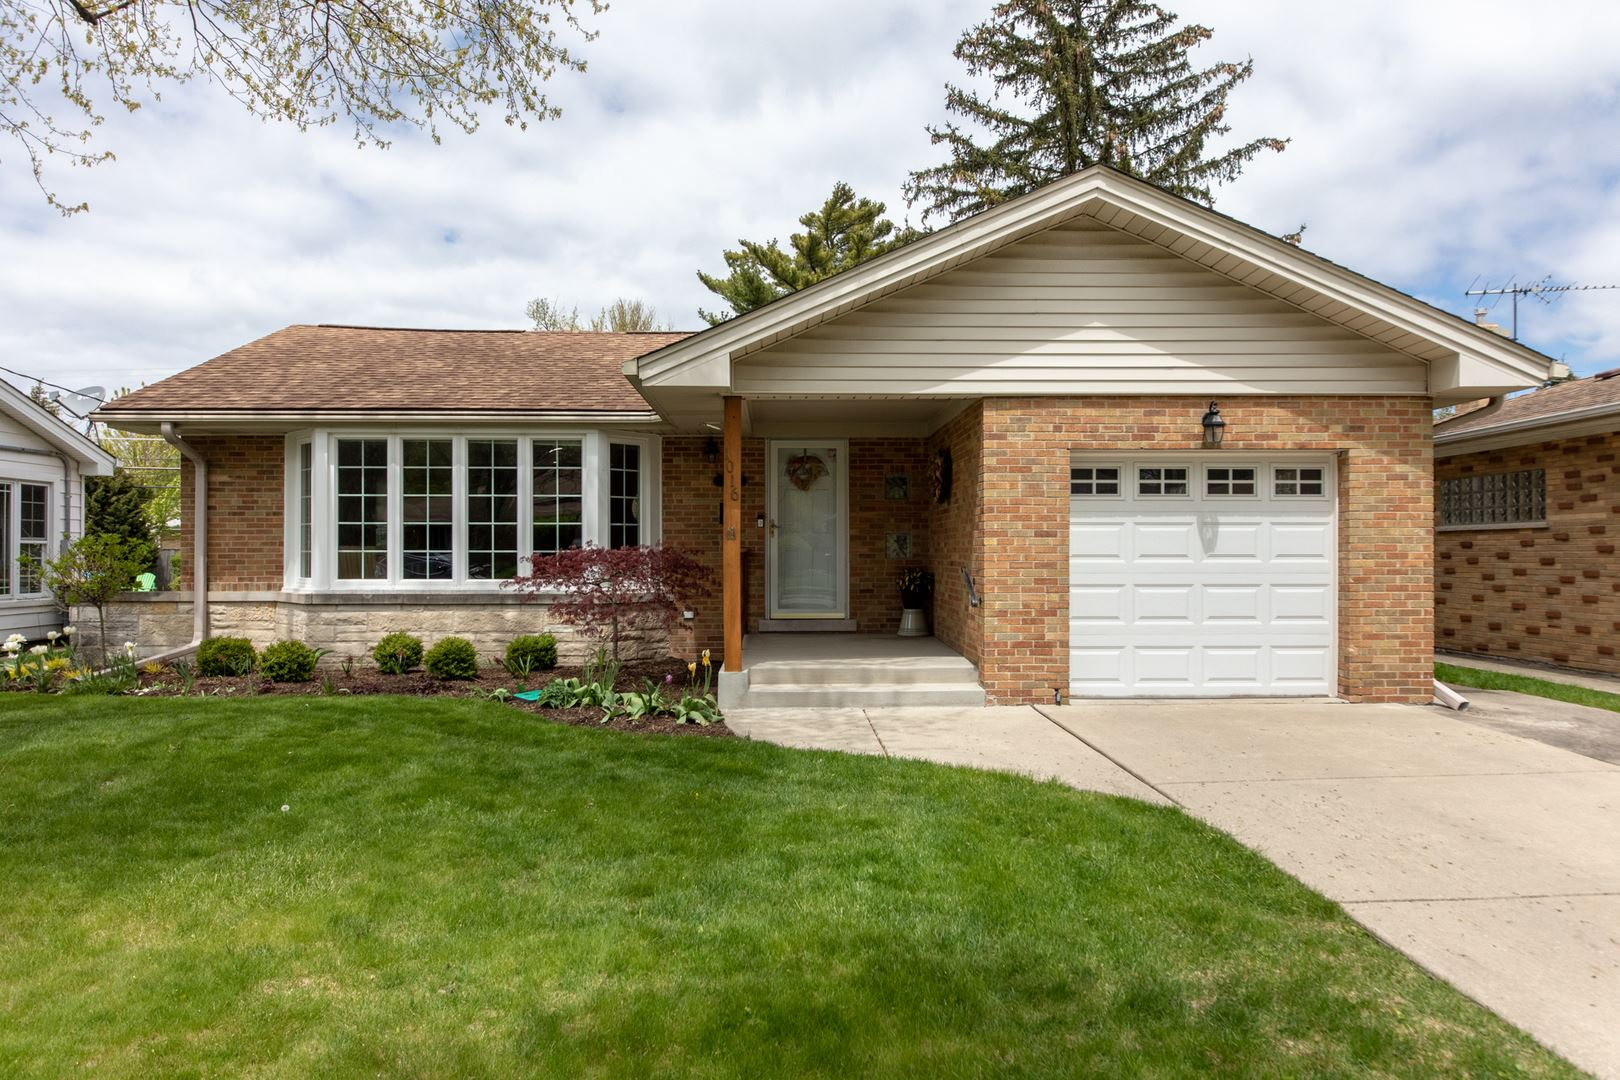 1016 Kent Avenue, Park Ridge, IL 60068 - #: 10712994